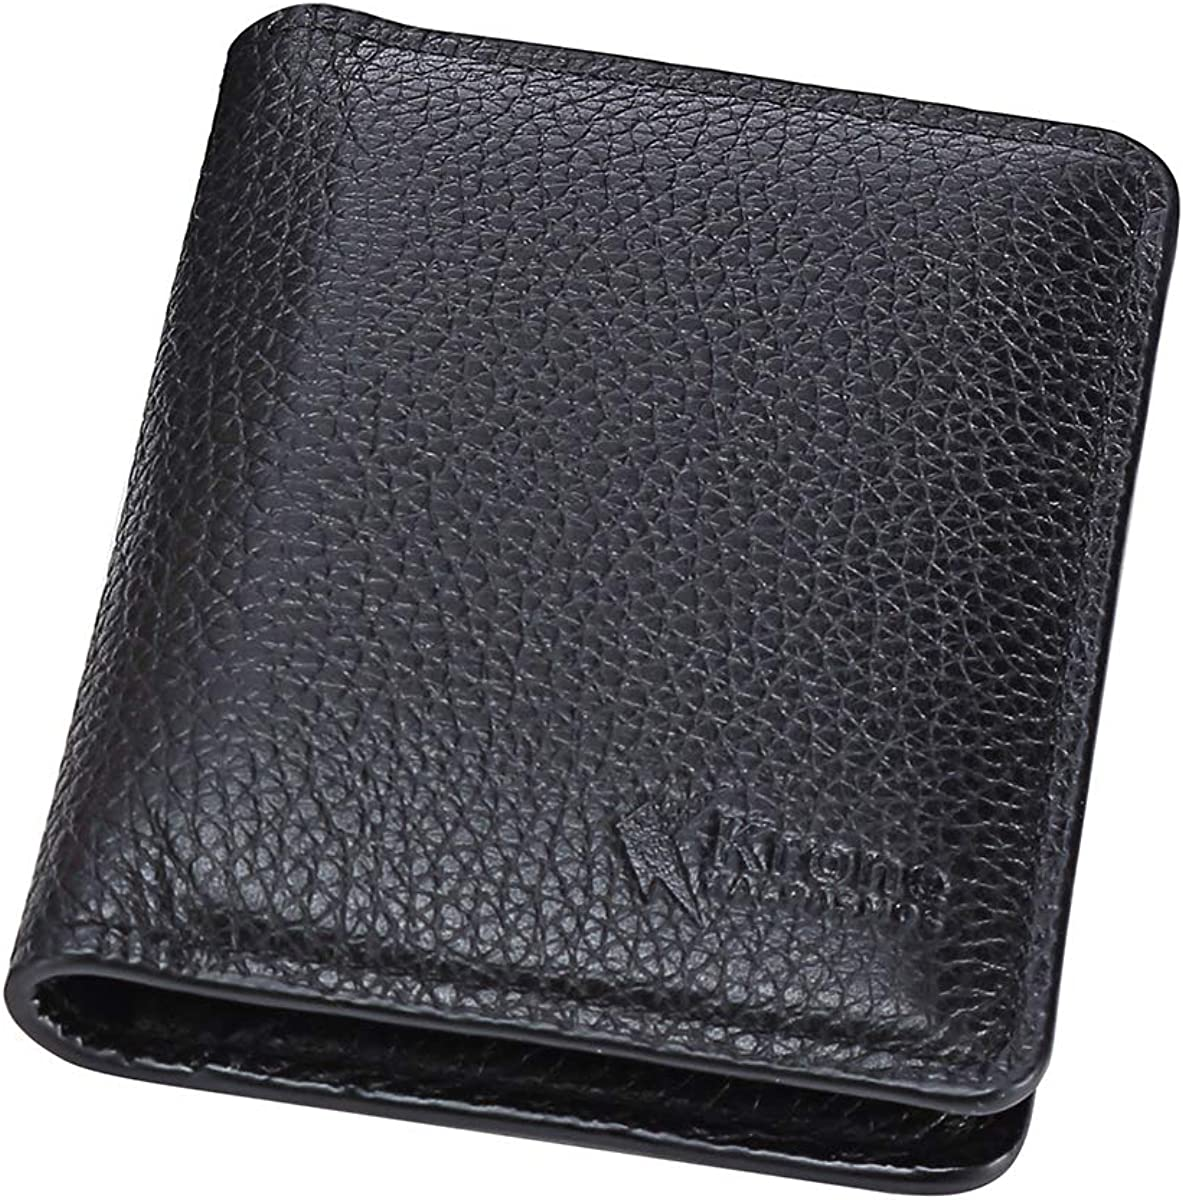 Men Crocodile Print on GENUINE LEATHER Minimalistic Slim RFID Blocking Wallet